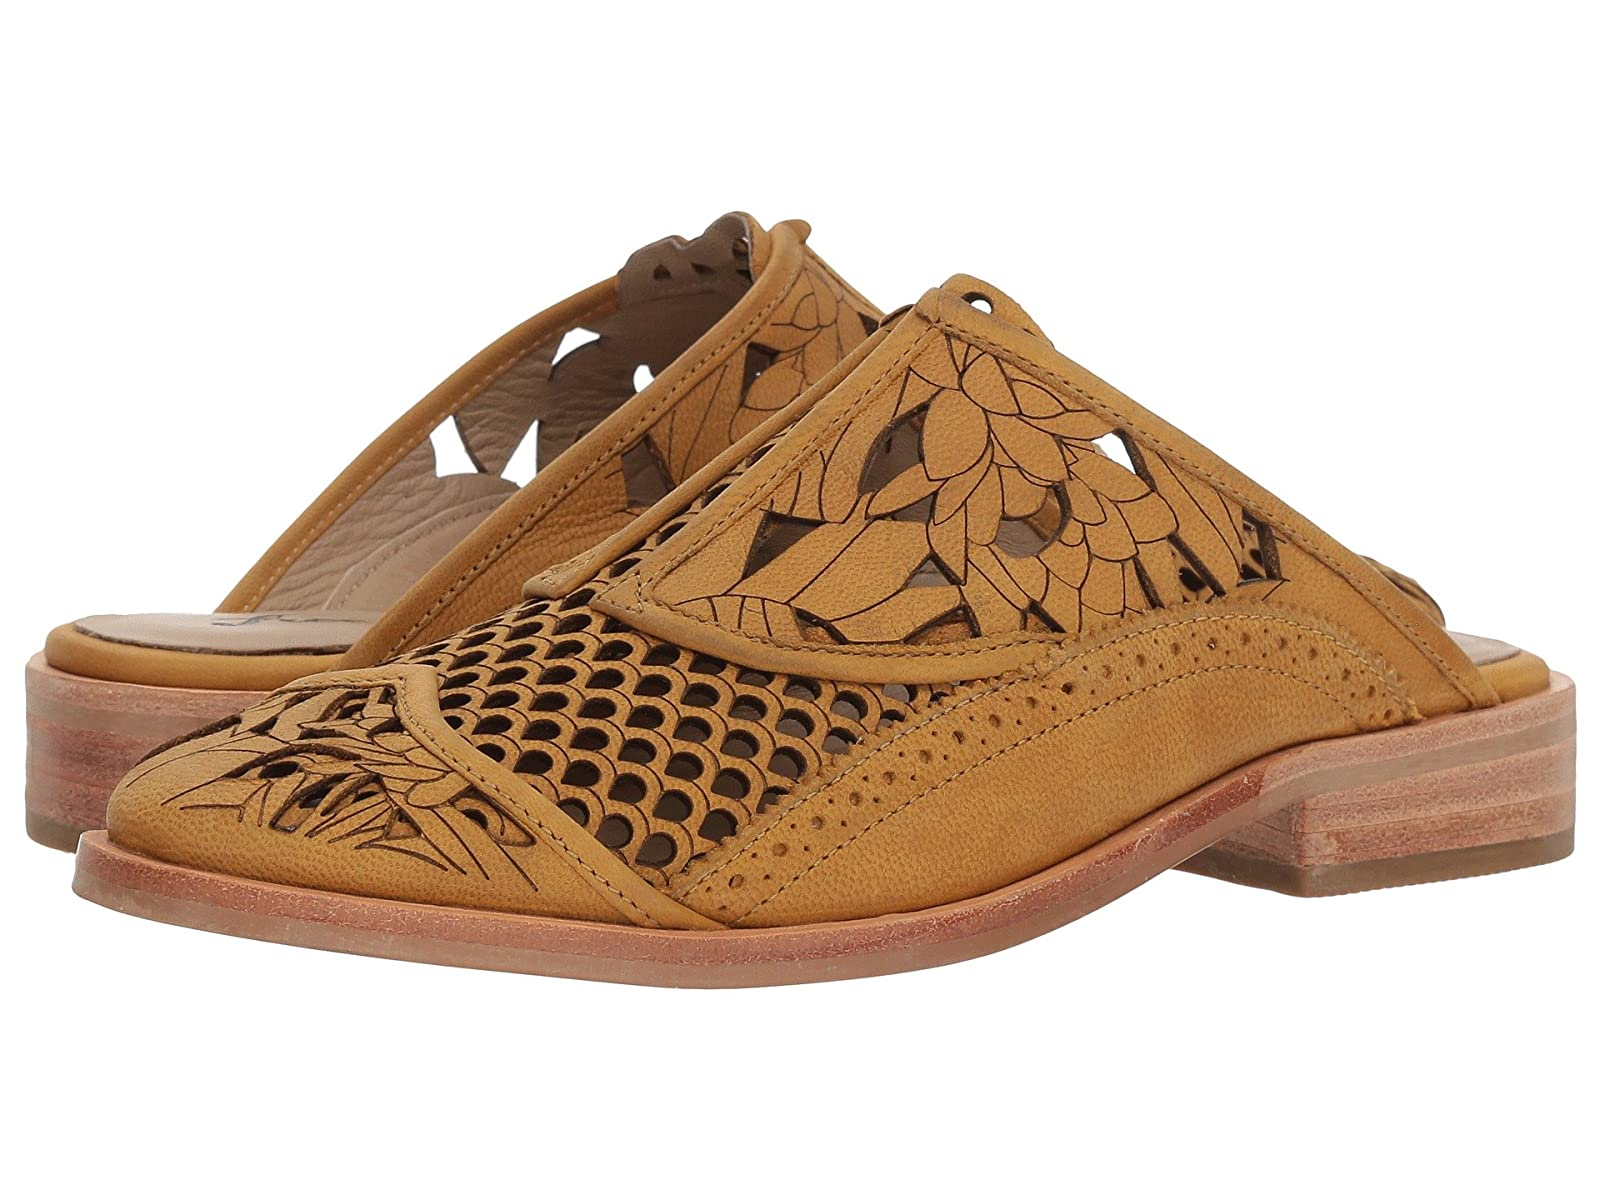 Free People Paramount Slip-On LoaferAtmospheric grades have affordable shoes